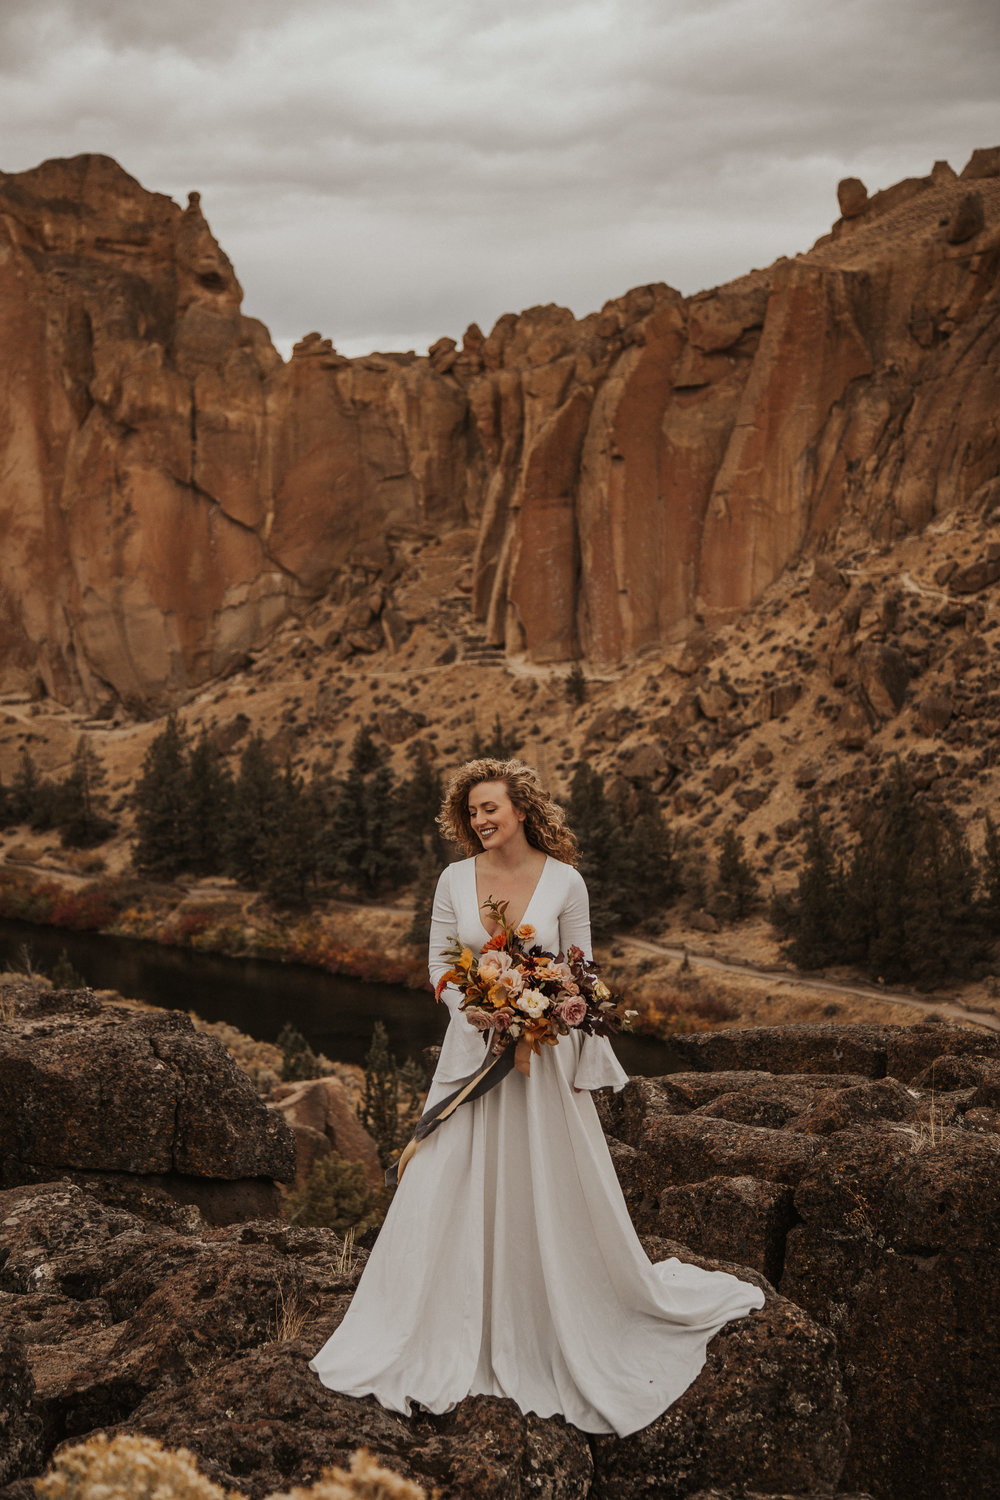 August-muse-images-smith-rock-elopement-oregon-bri-dylan-19.jpg